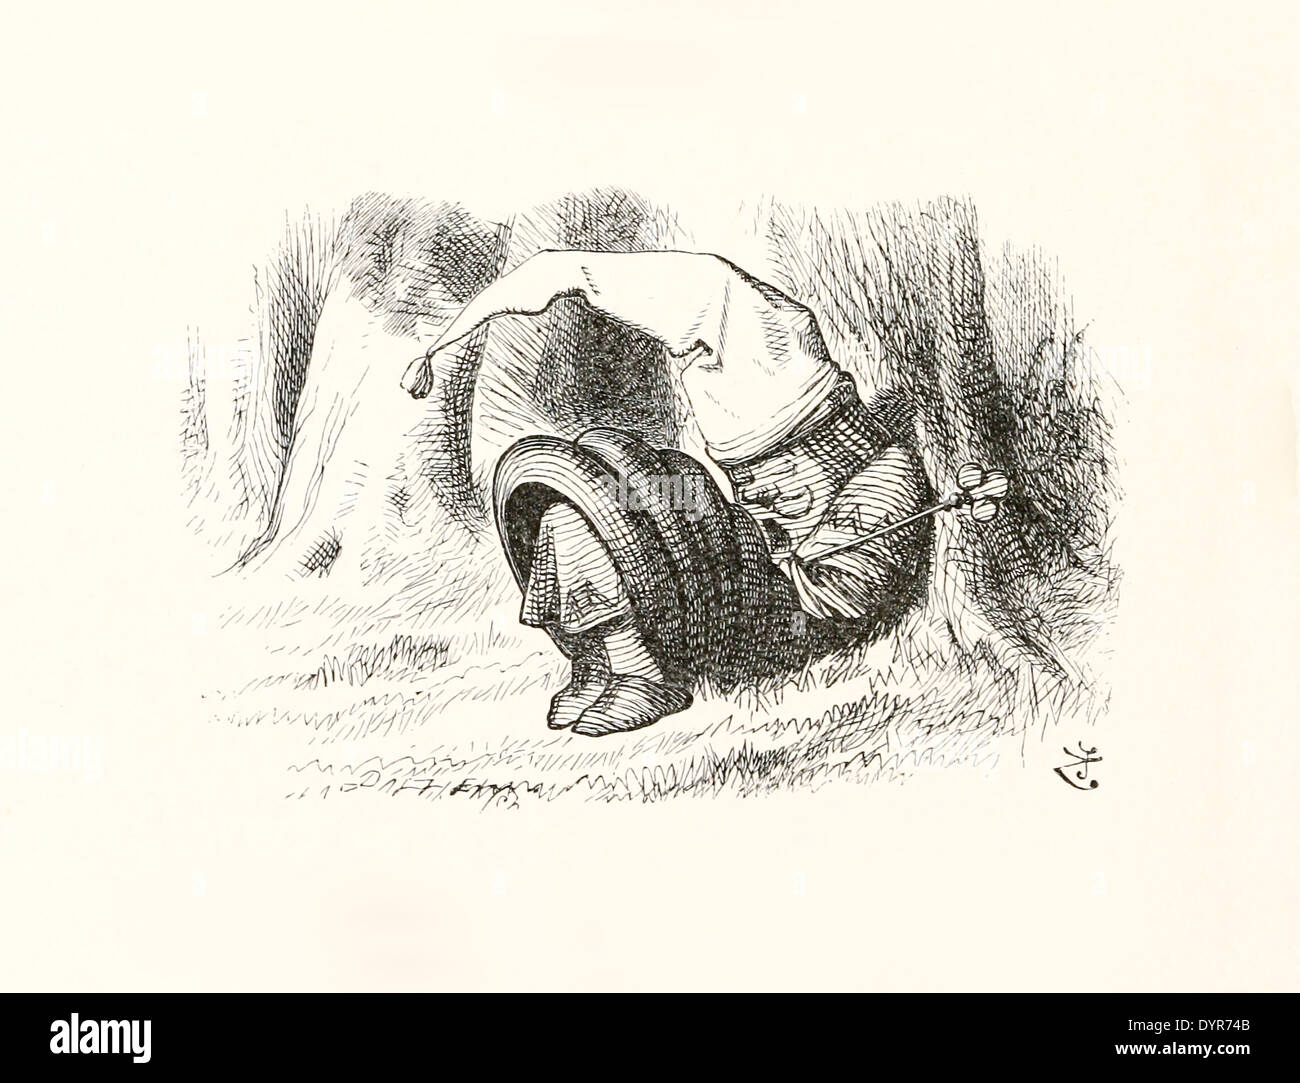 John Tenniel (1820-1914) illustration from Lewis Carroll's 'Through the Looking-Glass' published in 1871. - Stock Image